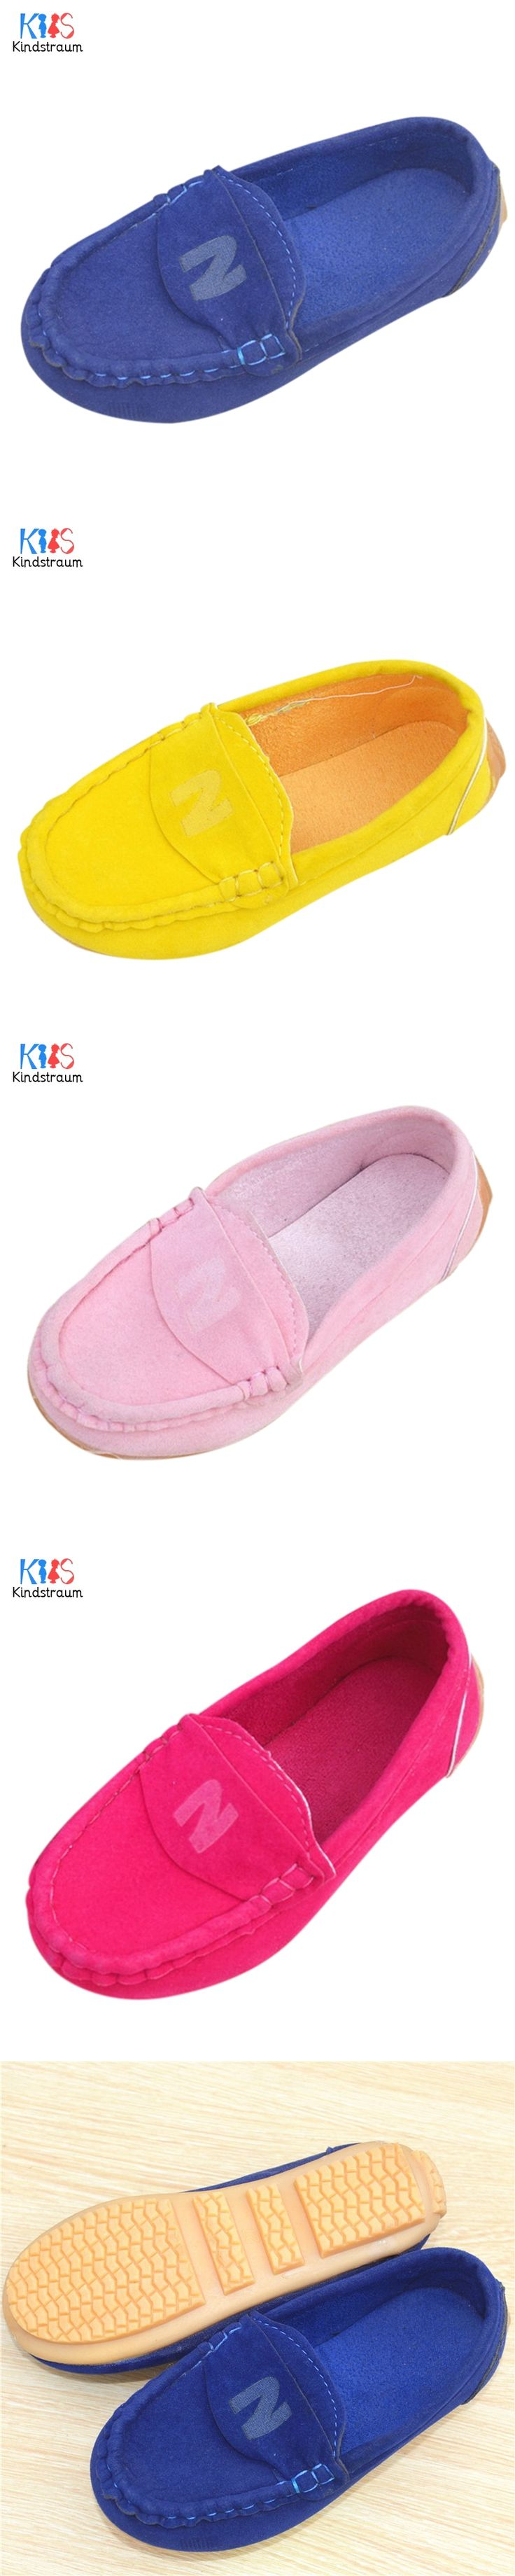 Kids Suede Loafers 2017 New Spring Children Casual Letter Print Cow Muscle Bottom School Single Shoes for Boys & Girls,EJ085